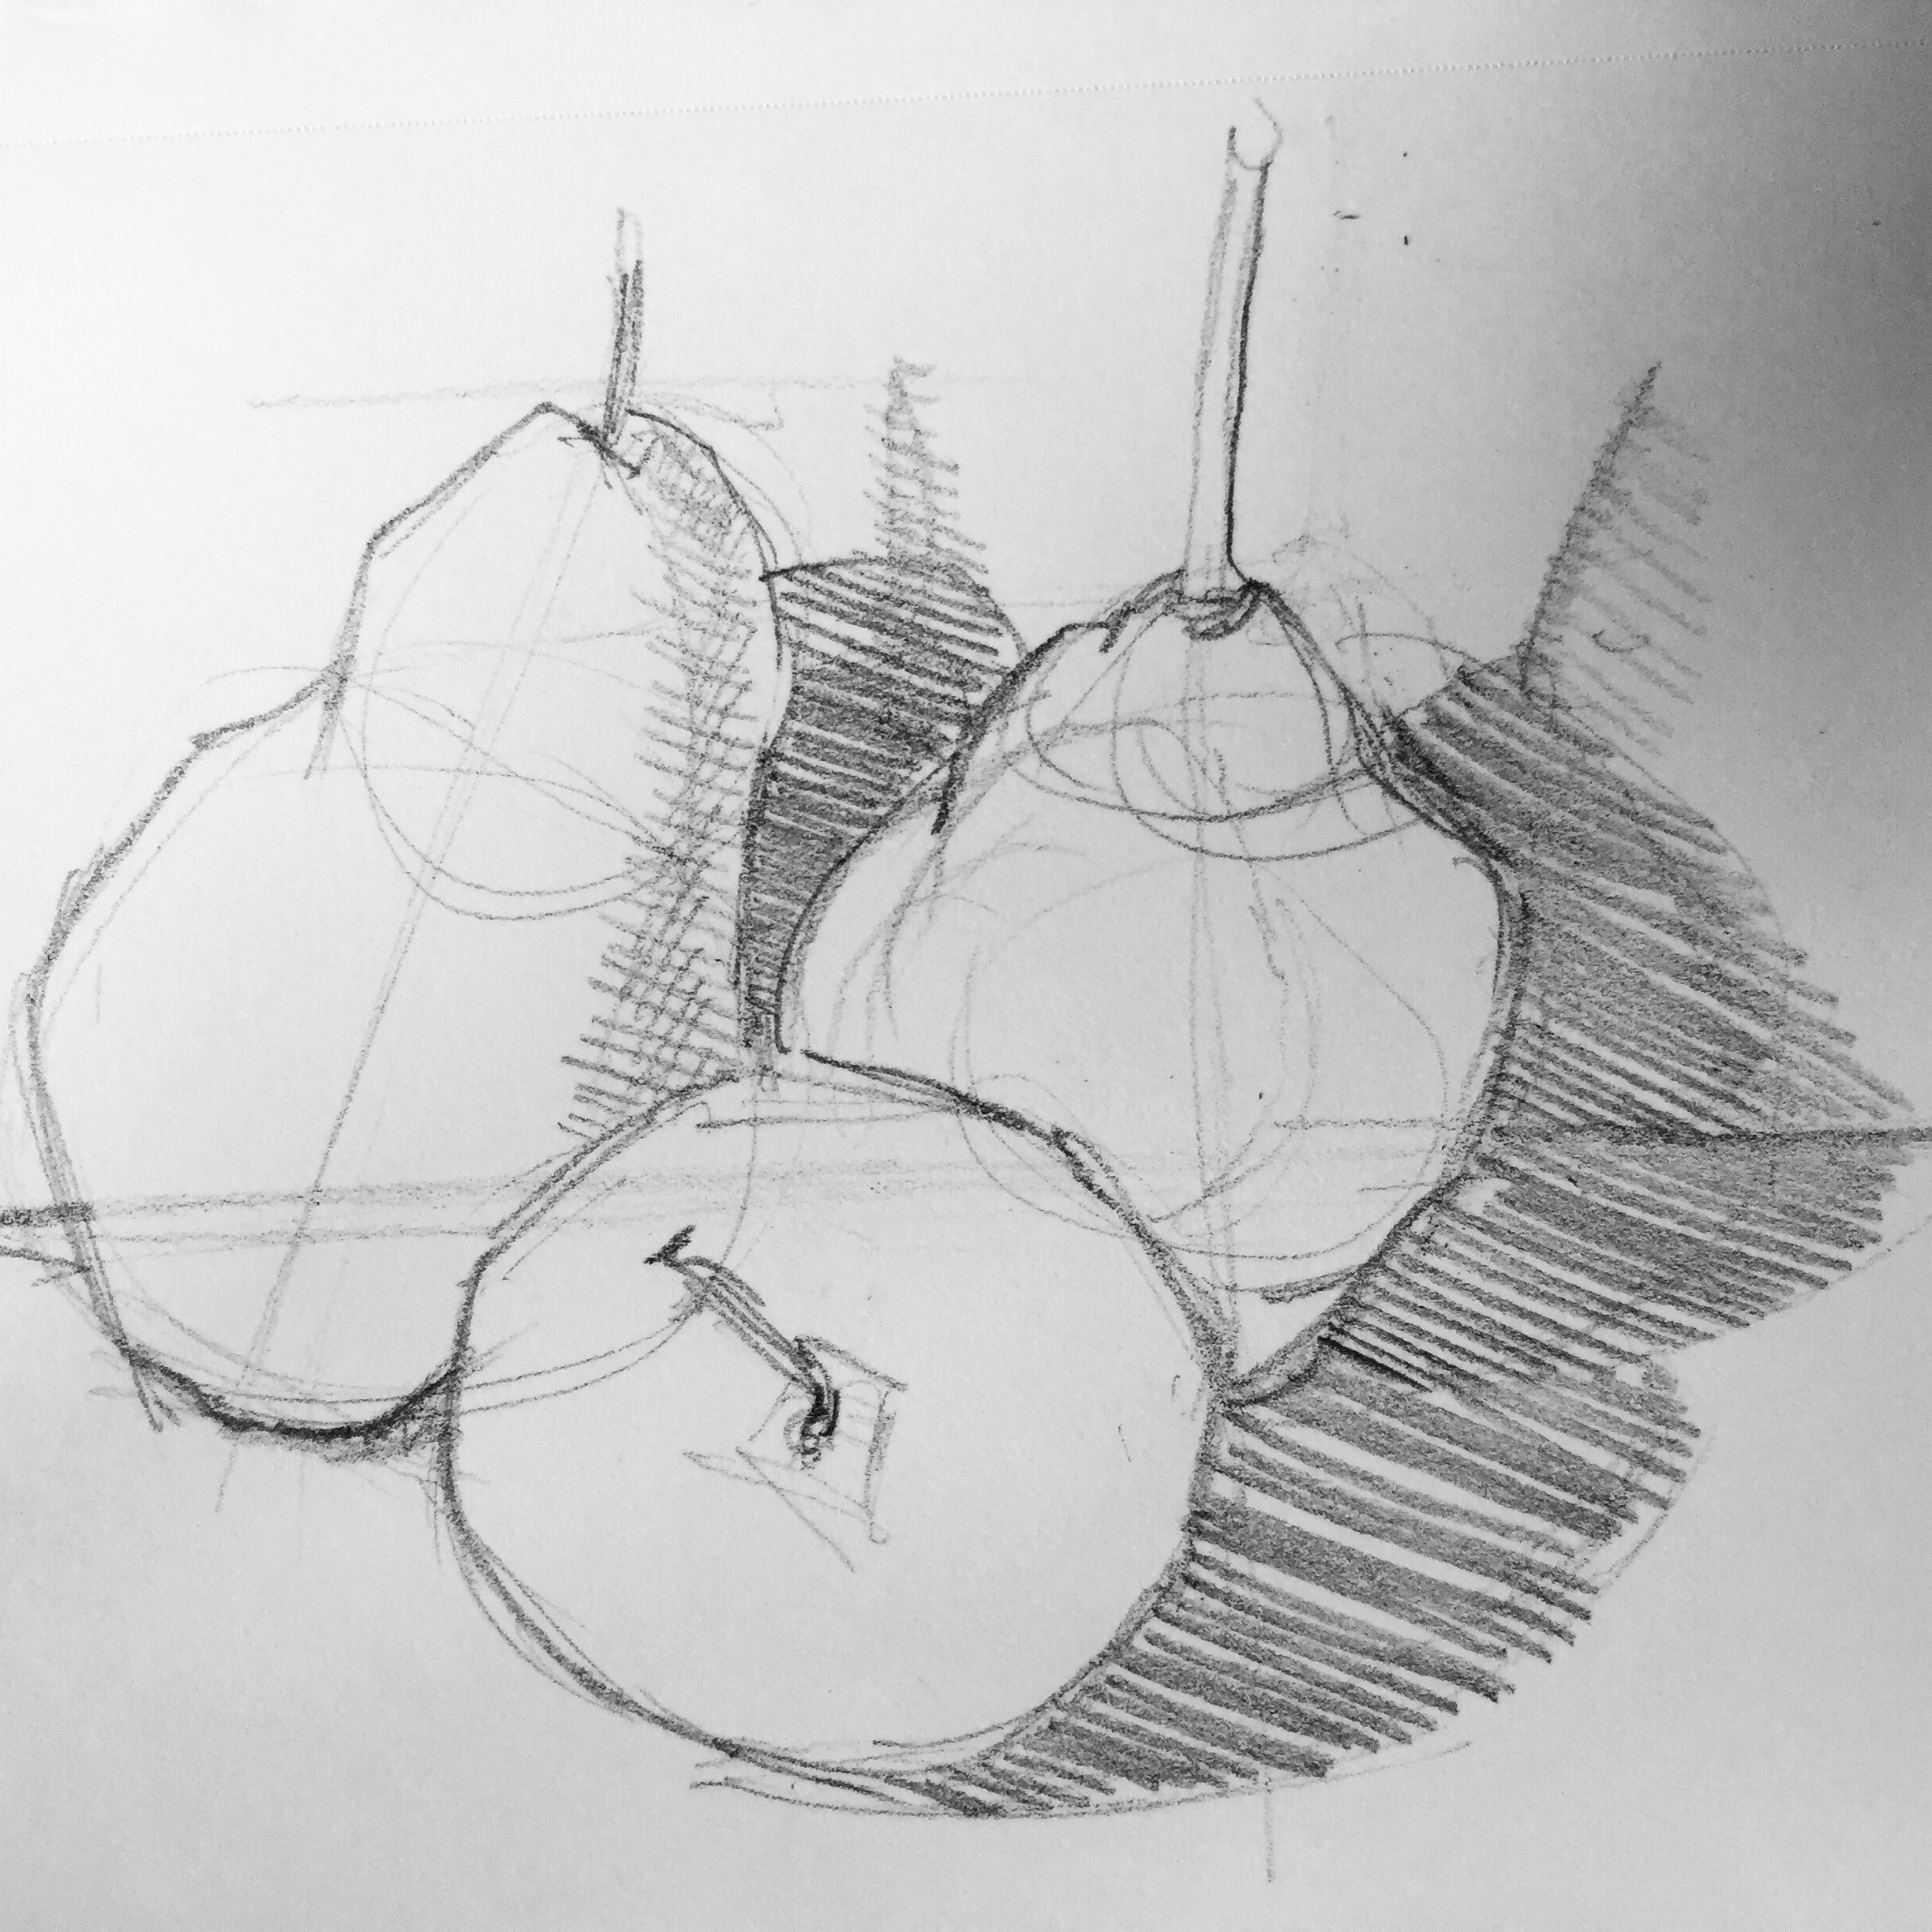 Study of Pears  by Maria Rizzo